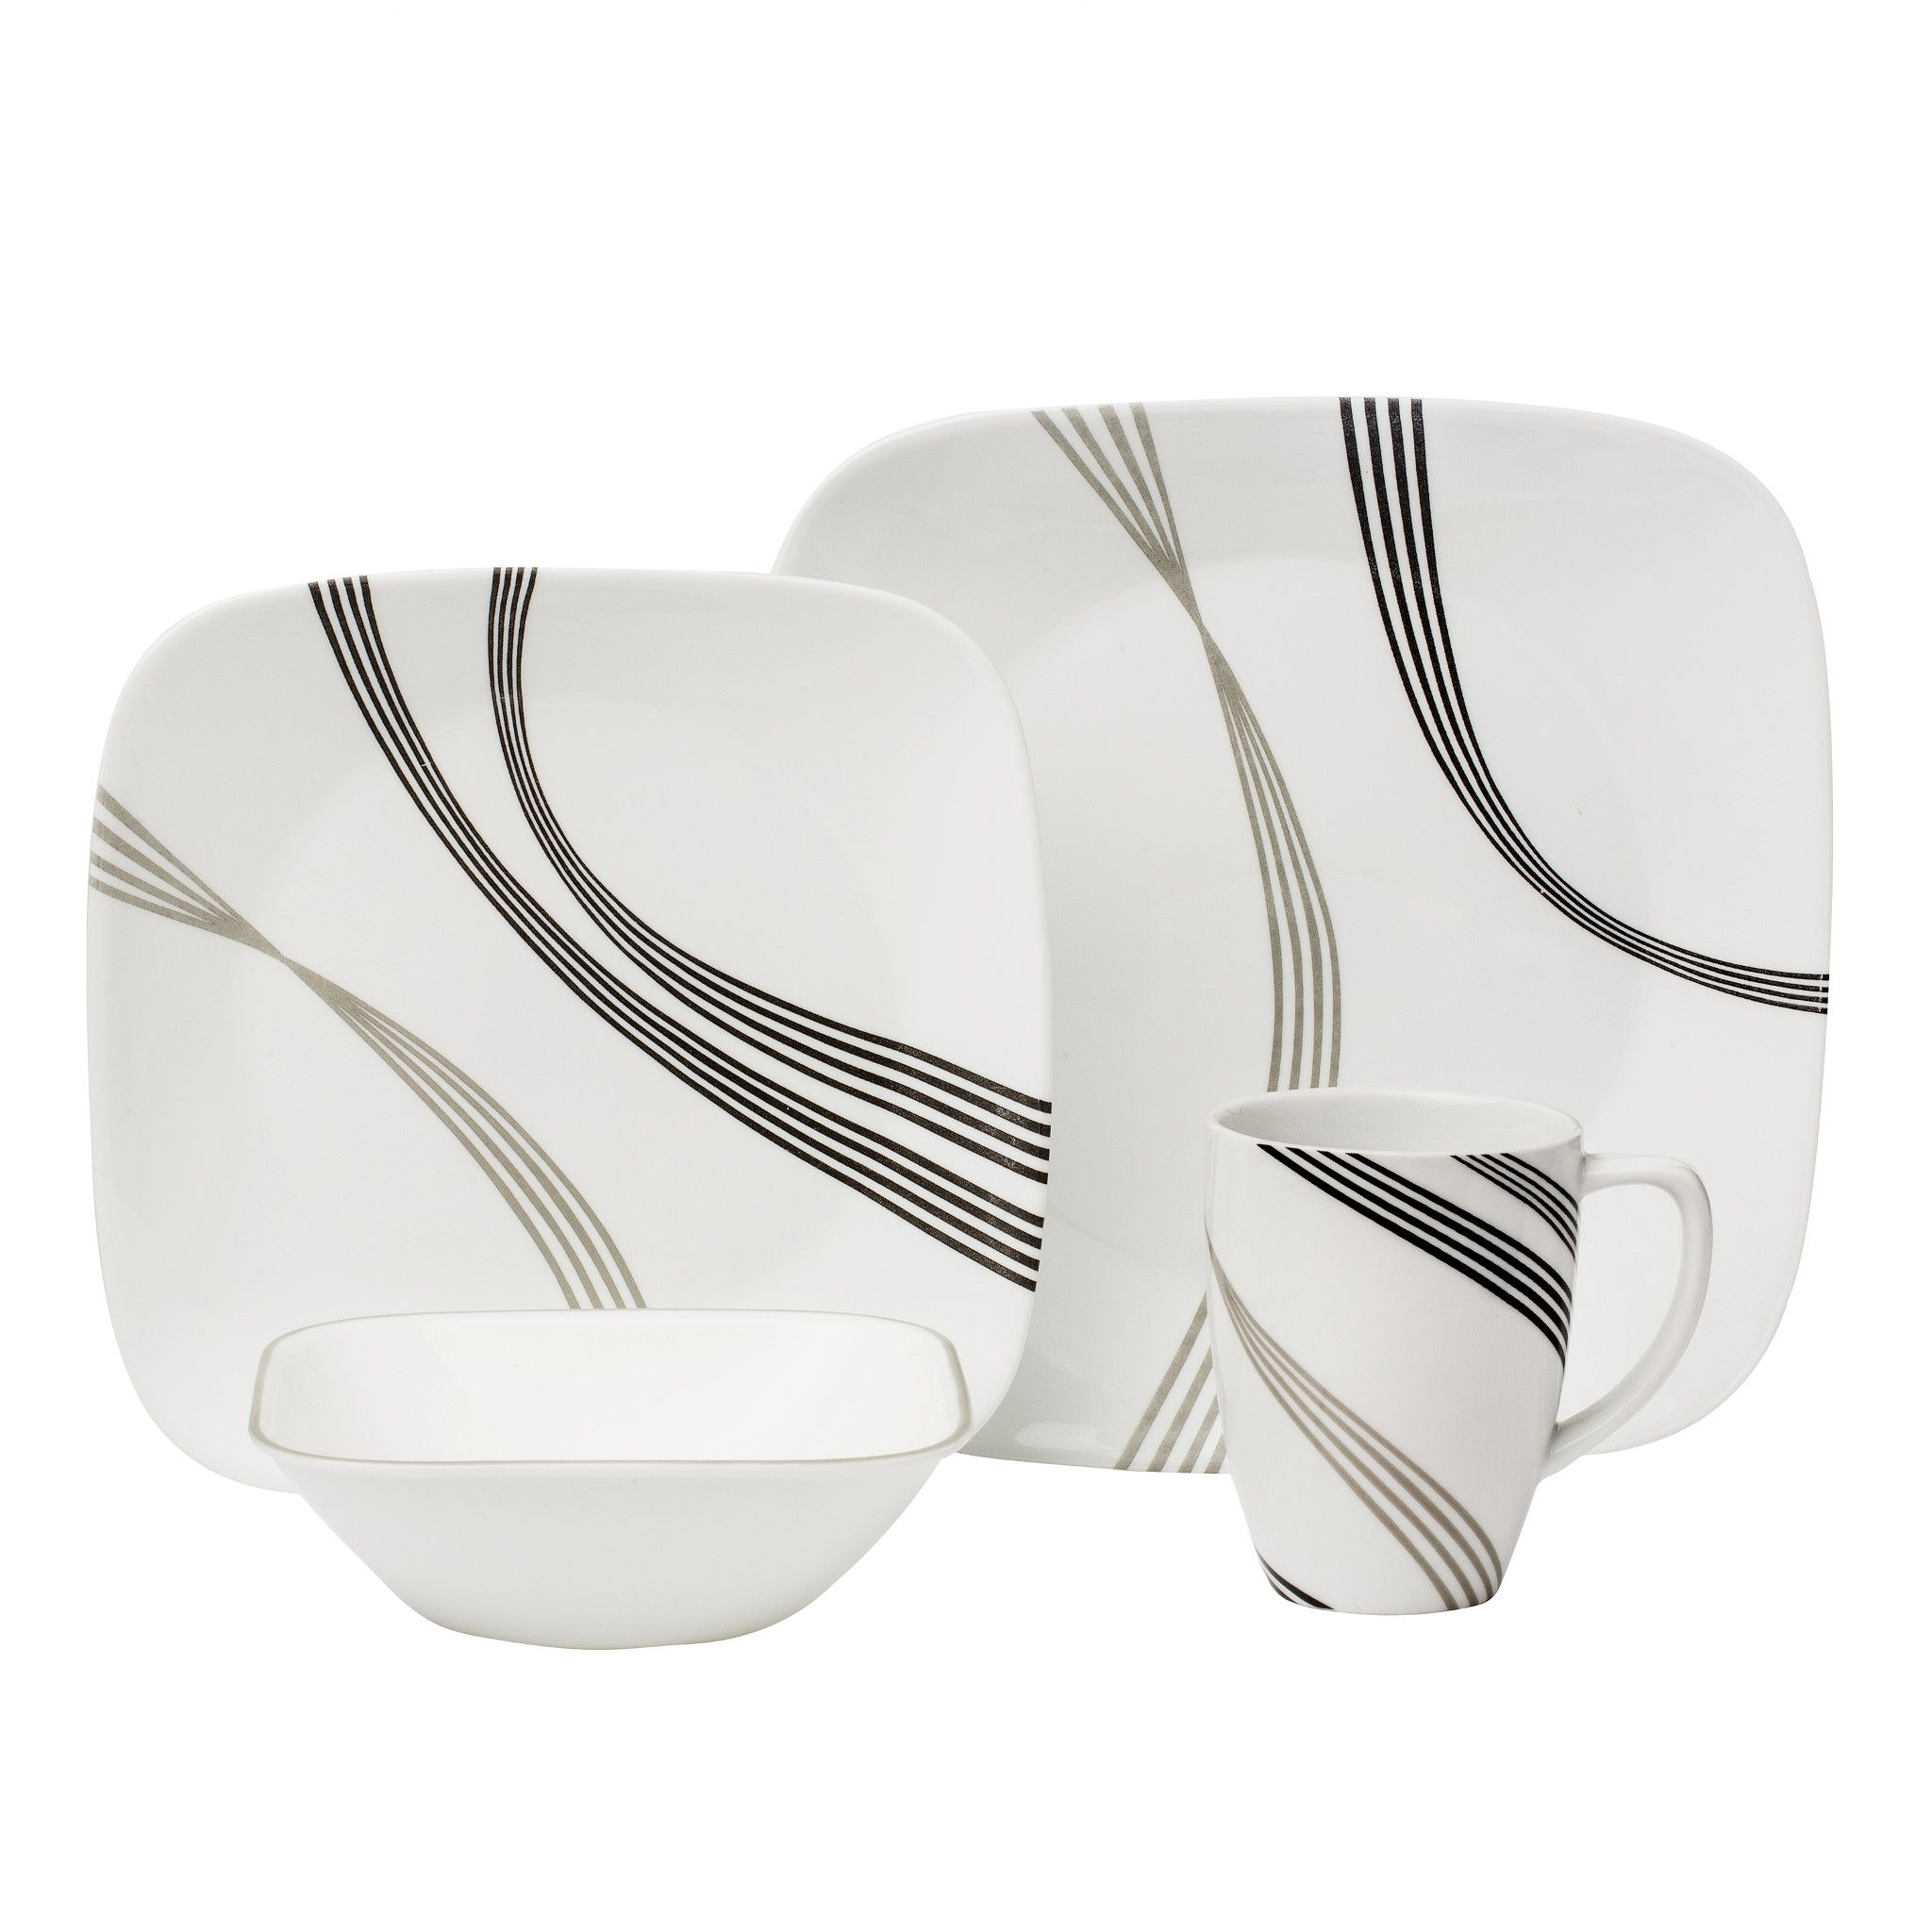 Urban Arc 16-piece Dinnerware Set, Service for 4